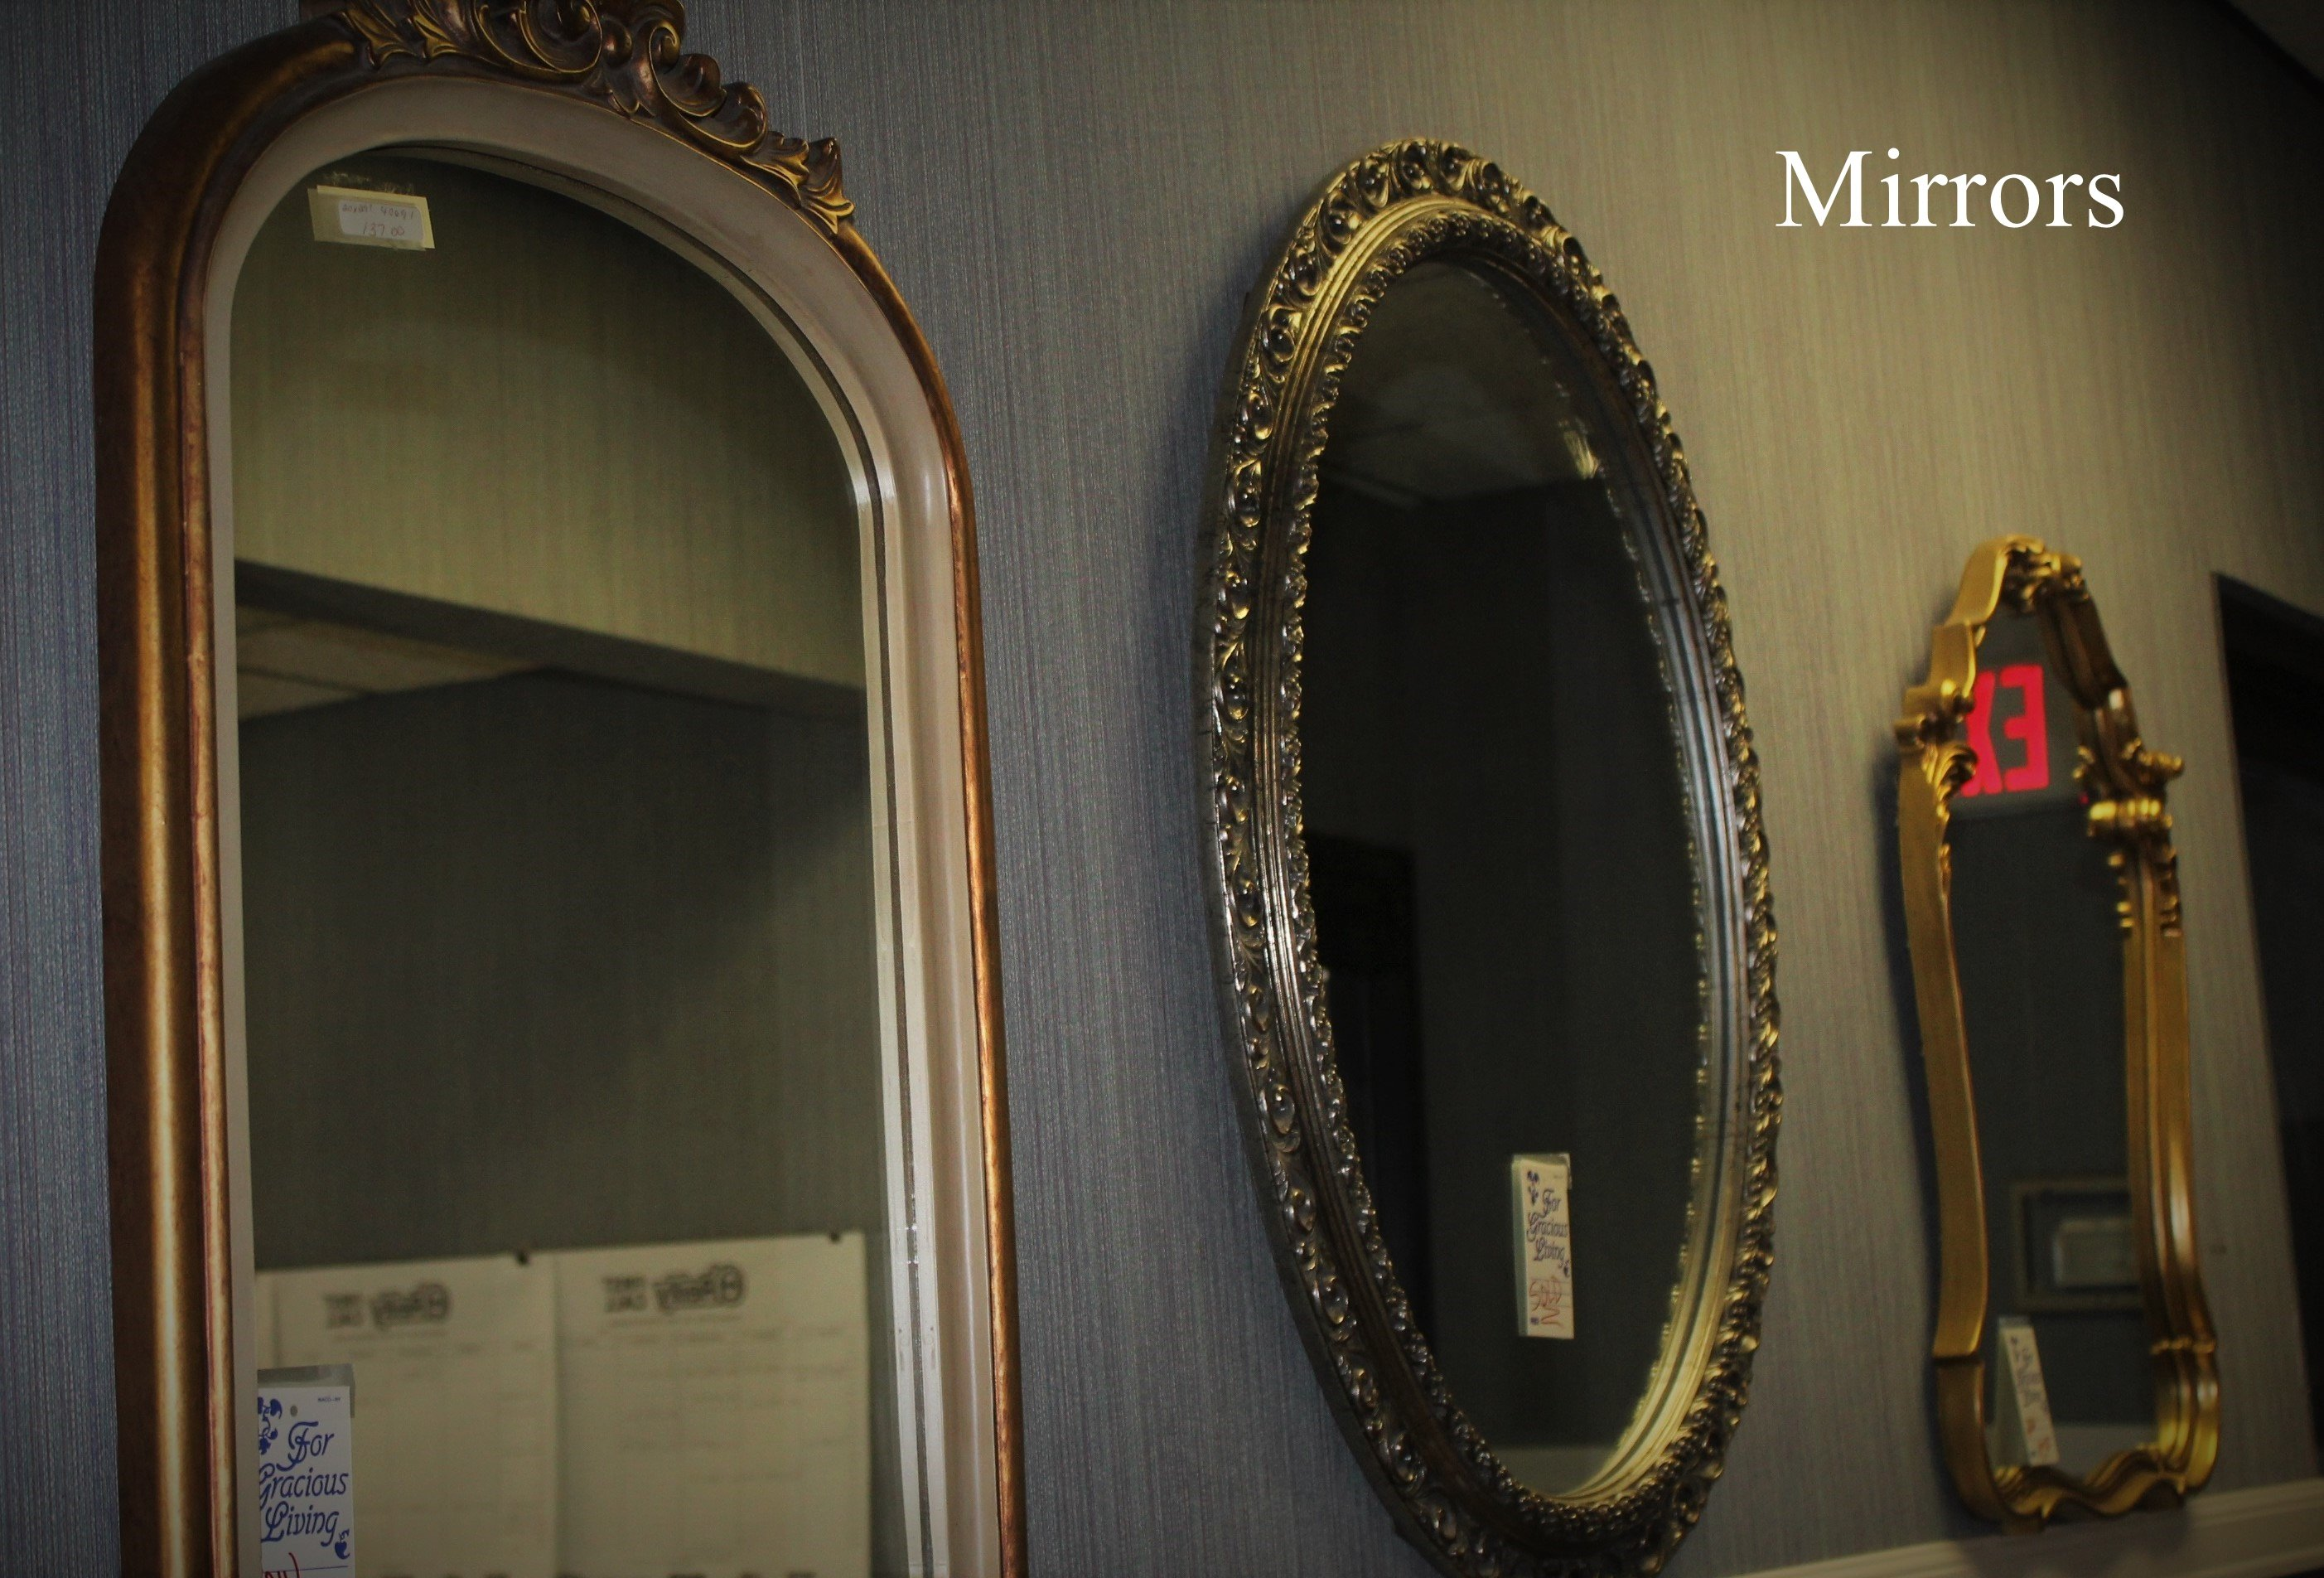 Mirrors in Fayetteville, NC